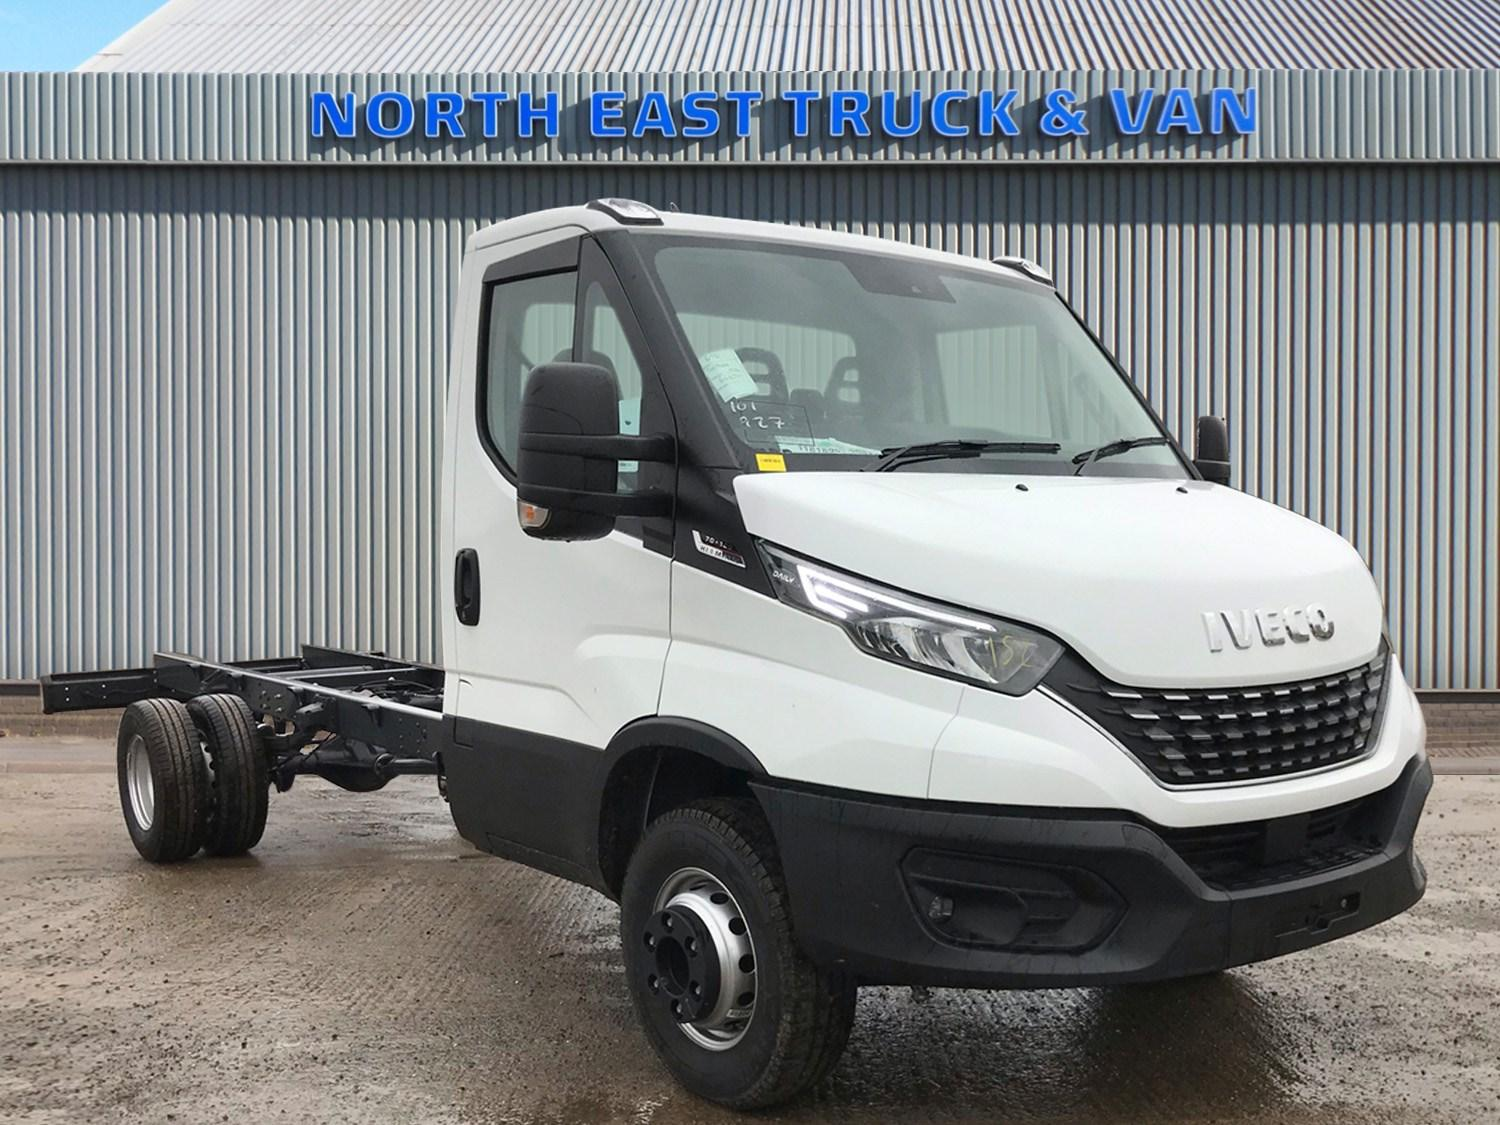 IVECO Daily 7t Chassis in stock